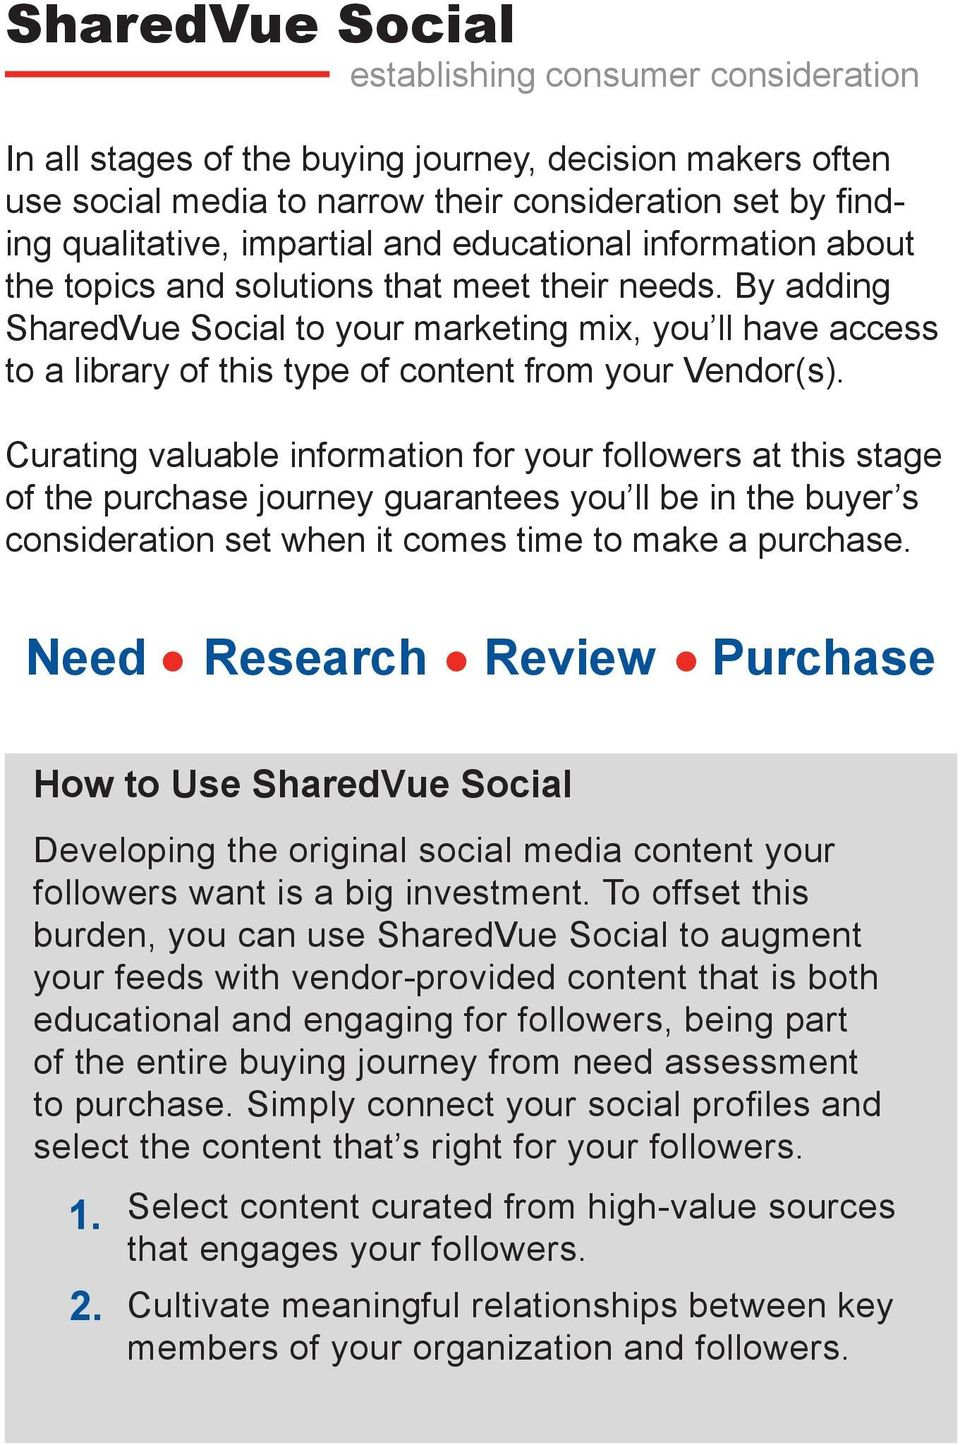 By adding SharedVue Social to your marketing mix, you ll have access to a library of this type of content from your Vendor(s).